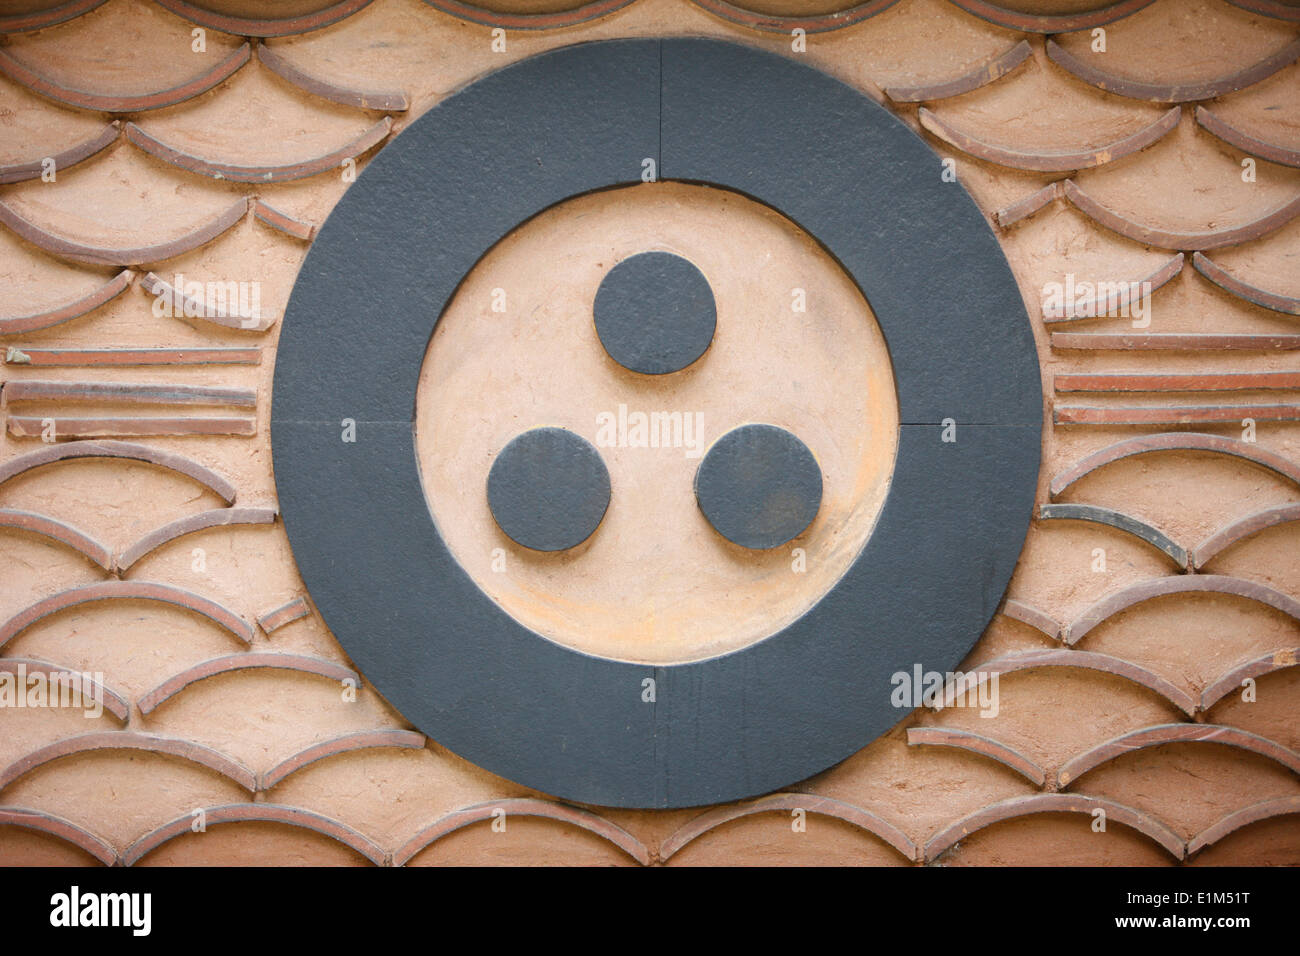 Buddhist Symbol One Circle And The 3 Jewels Of Buddhism The Stock